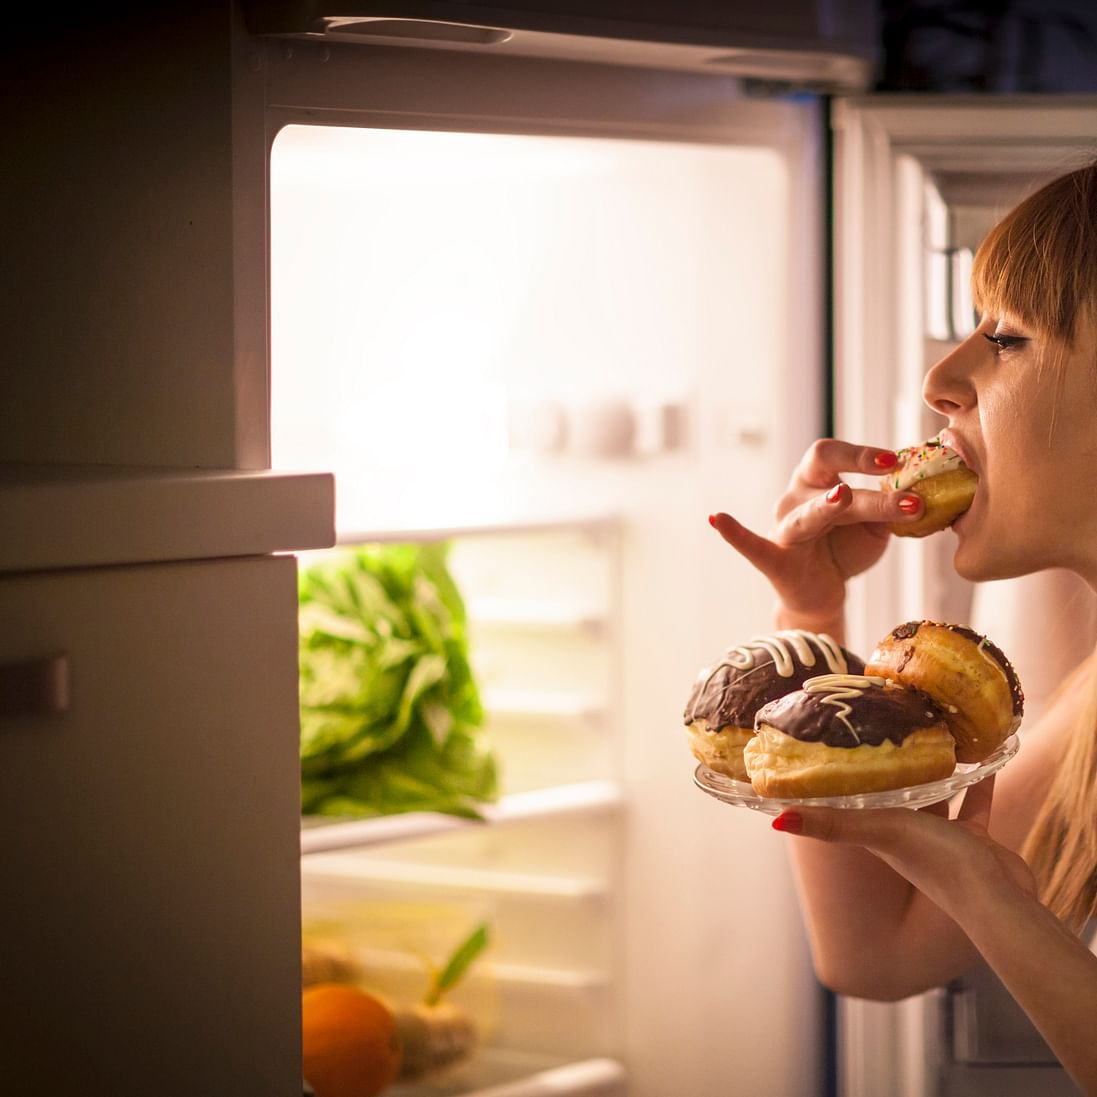 Blame it on the brain for overeating